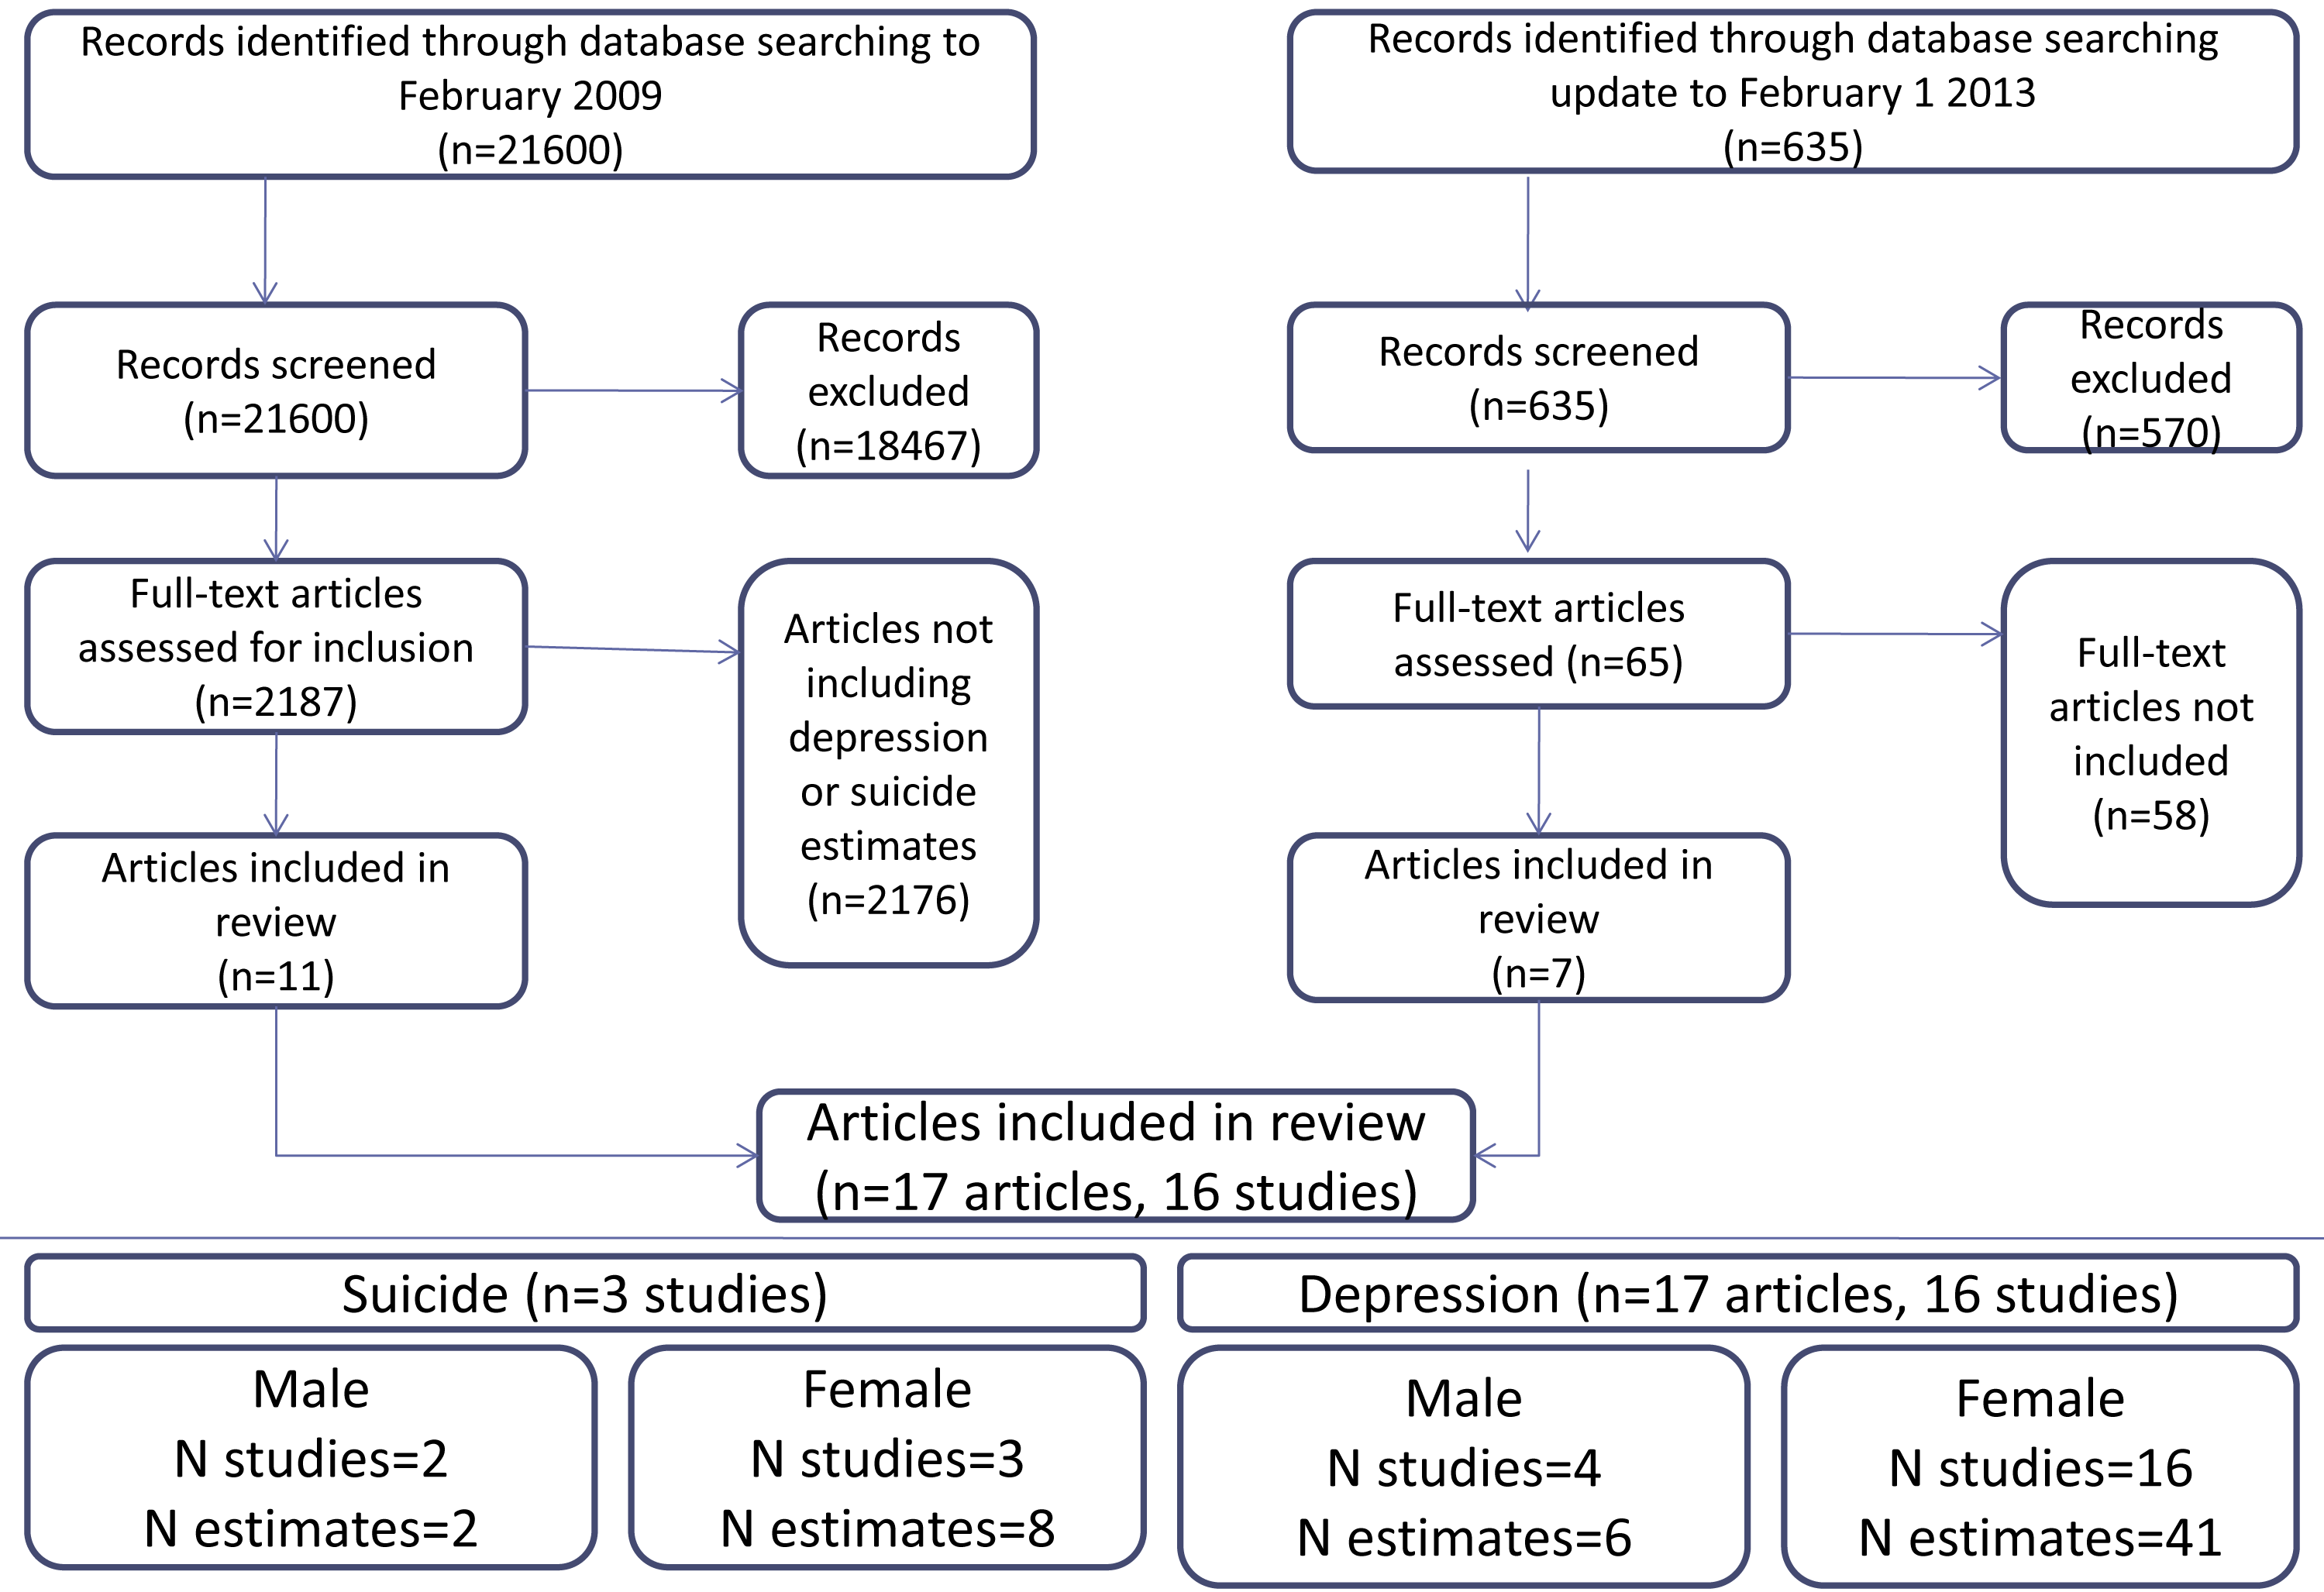 Flow of studies through the review.